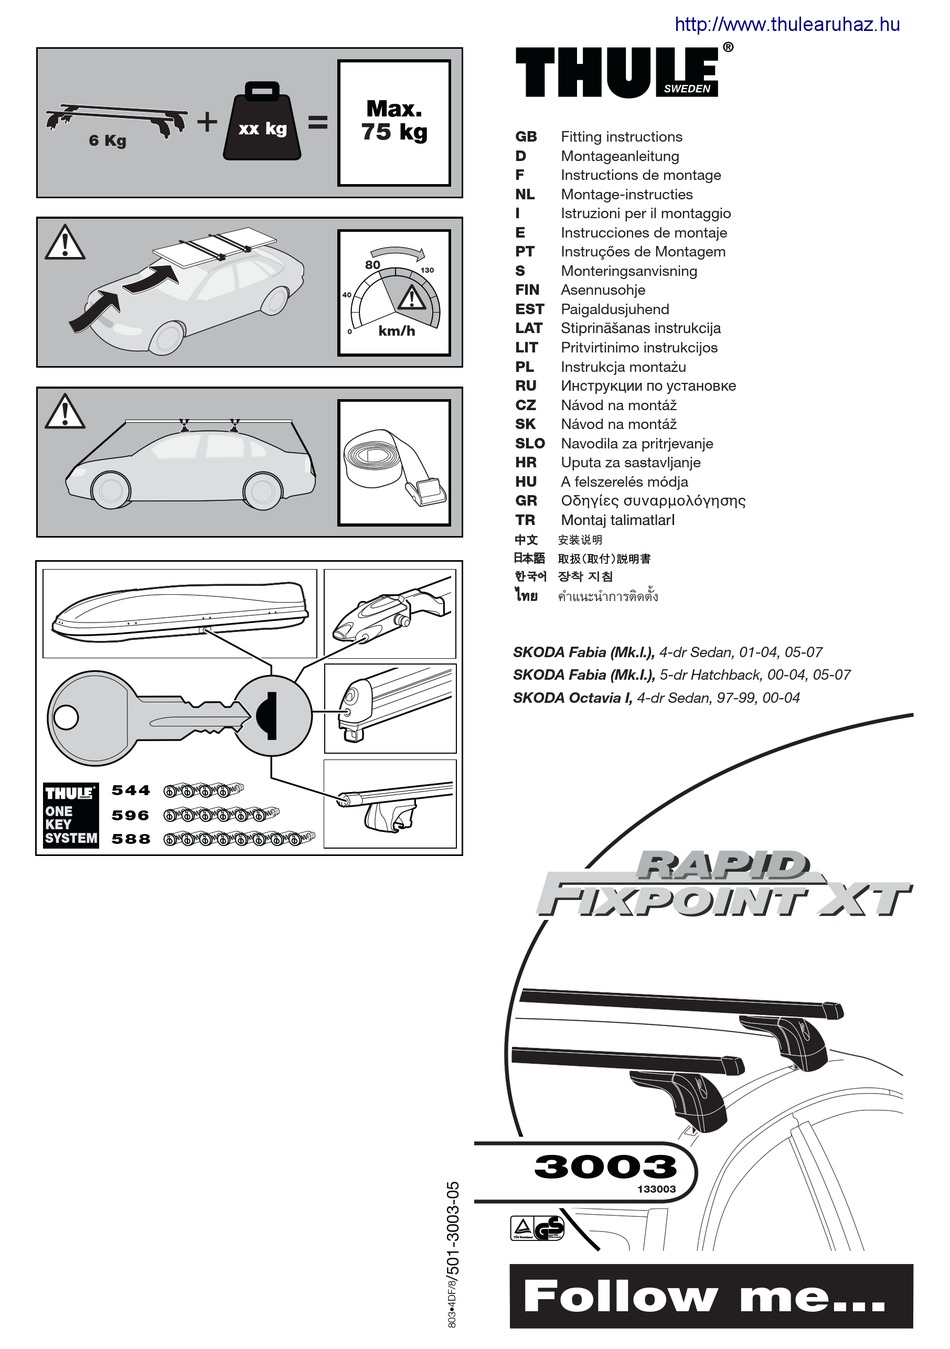 THULE 3003 FITTING INSTRUCTIONS MANUAL Pdf Download